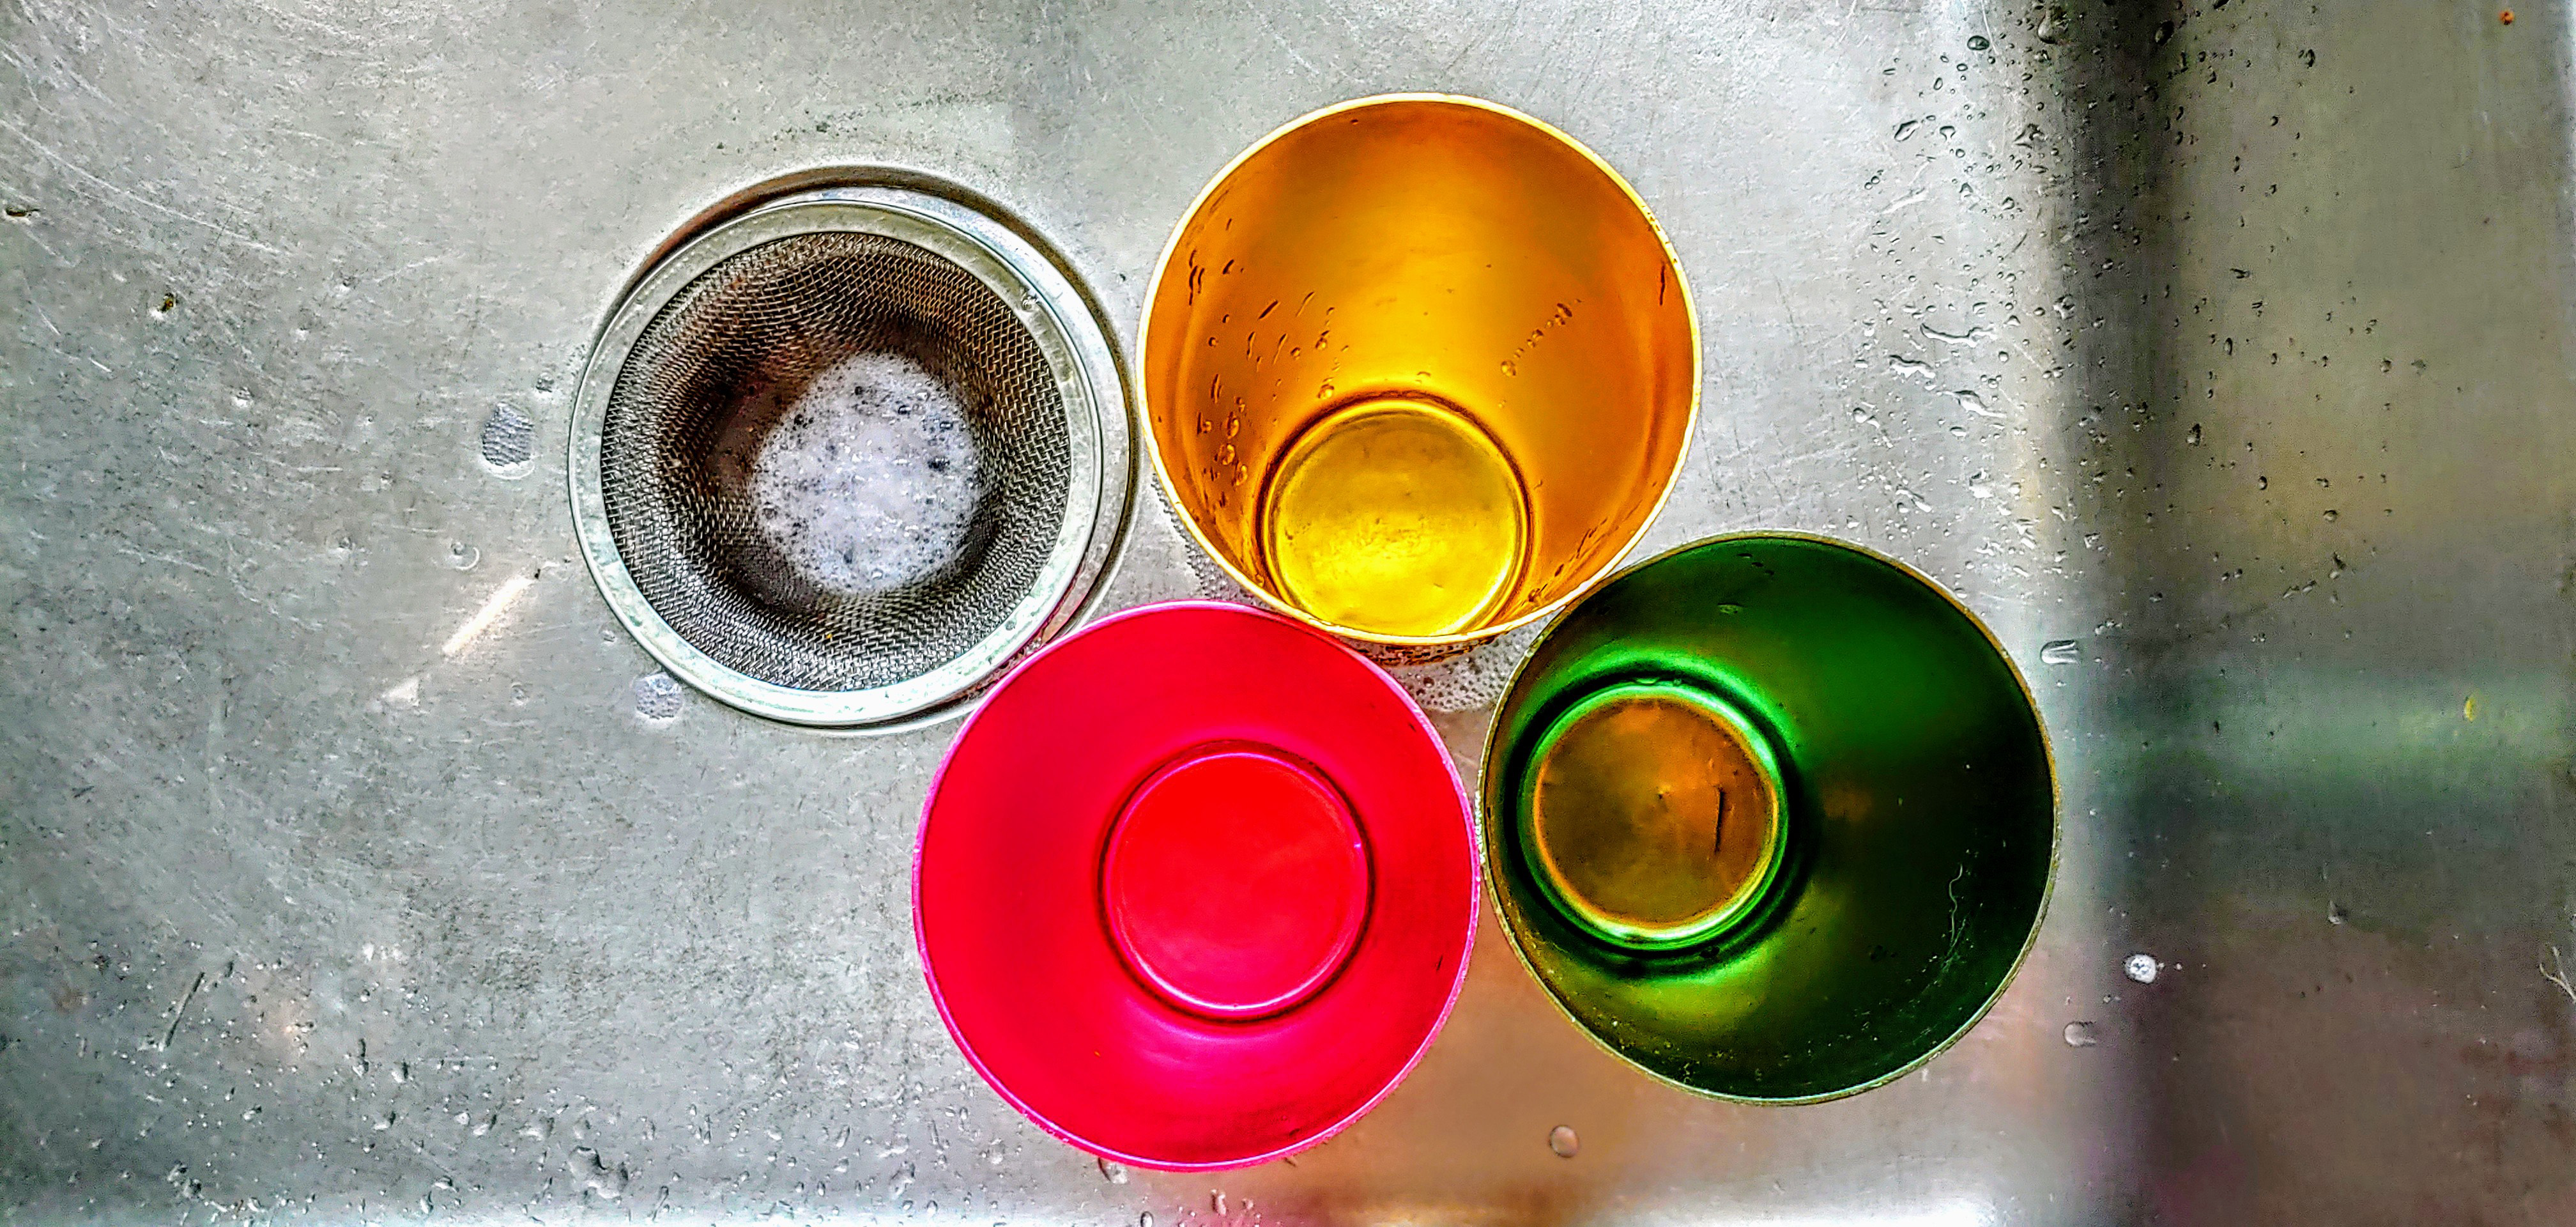 cups in the sink (2020)